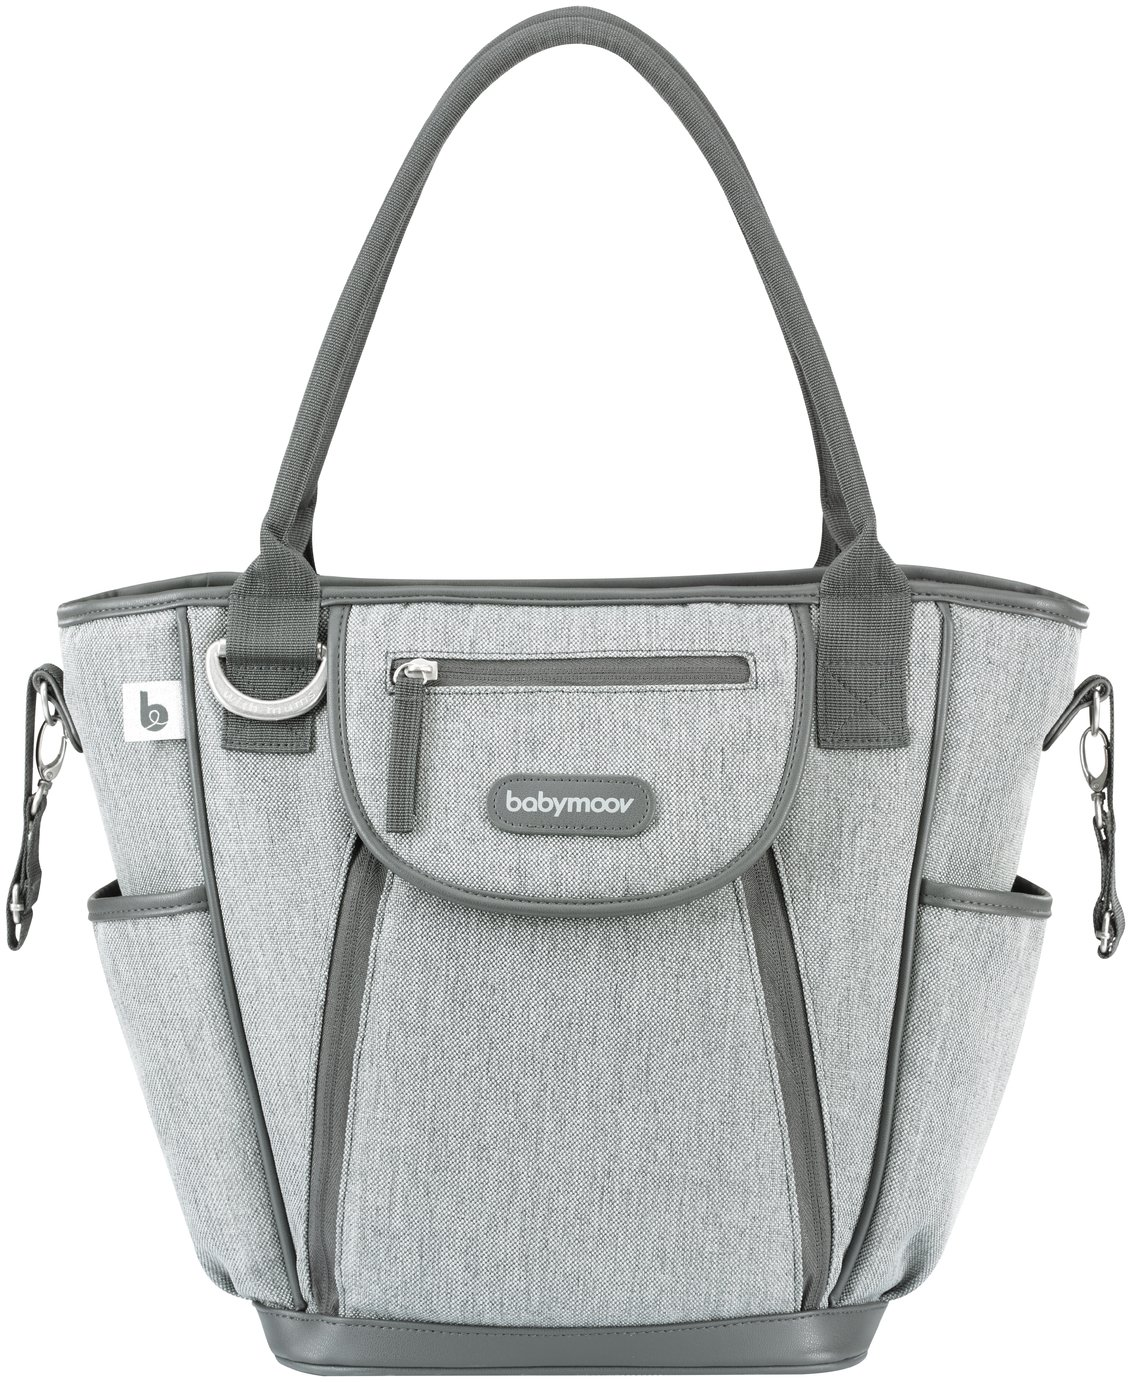 Babymoov Daily Changing Bag - Smokey